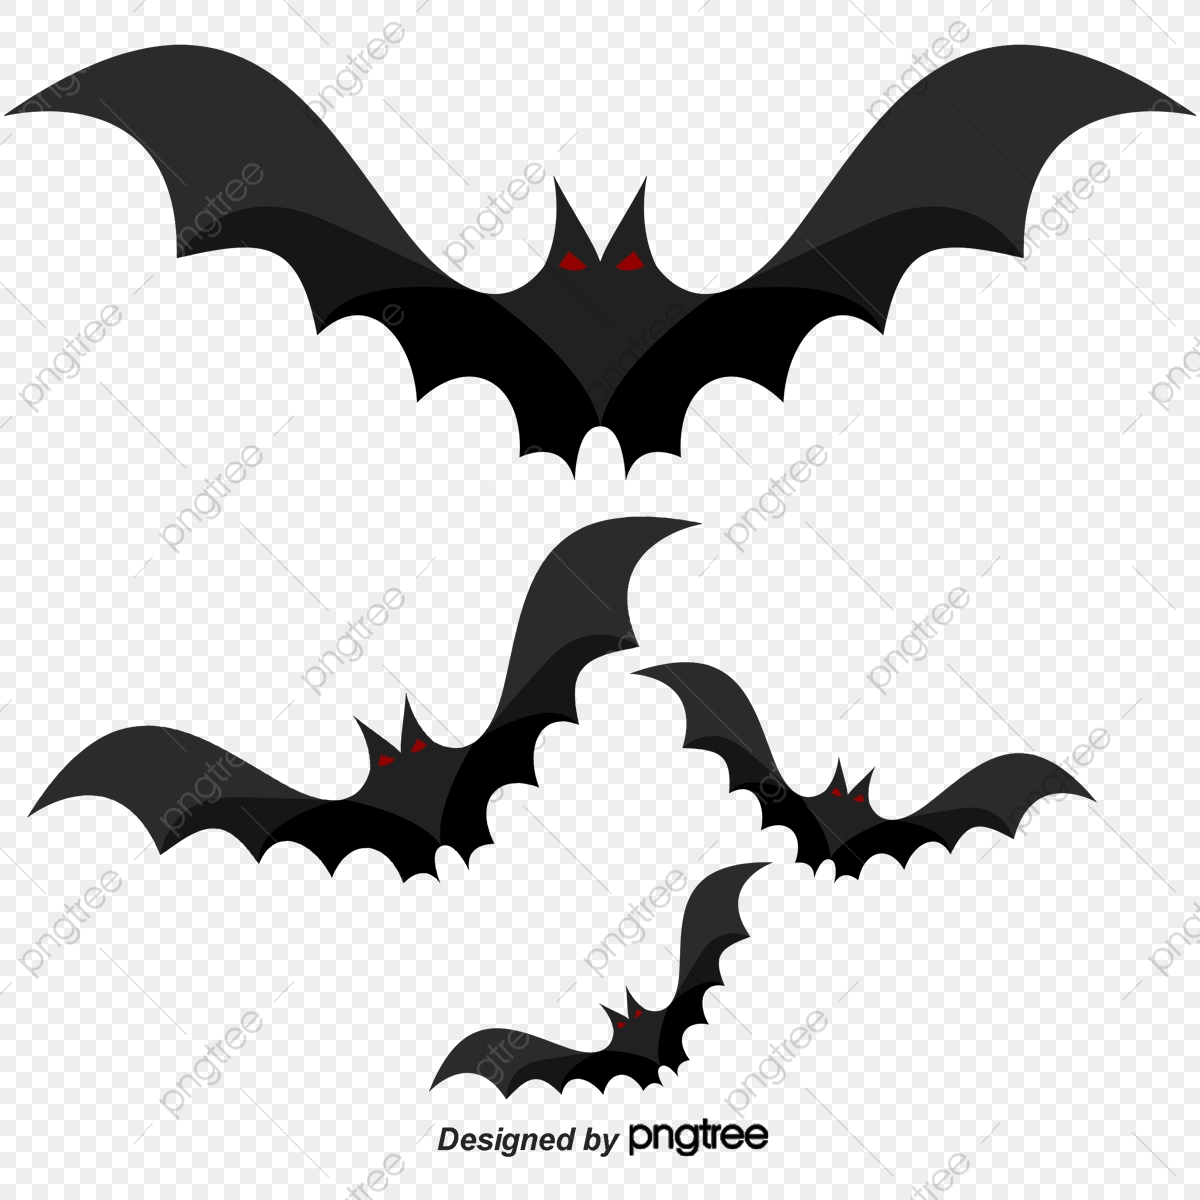 Bat Png Images Vector And Psd Files Free Download On Pngtree